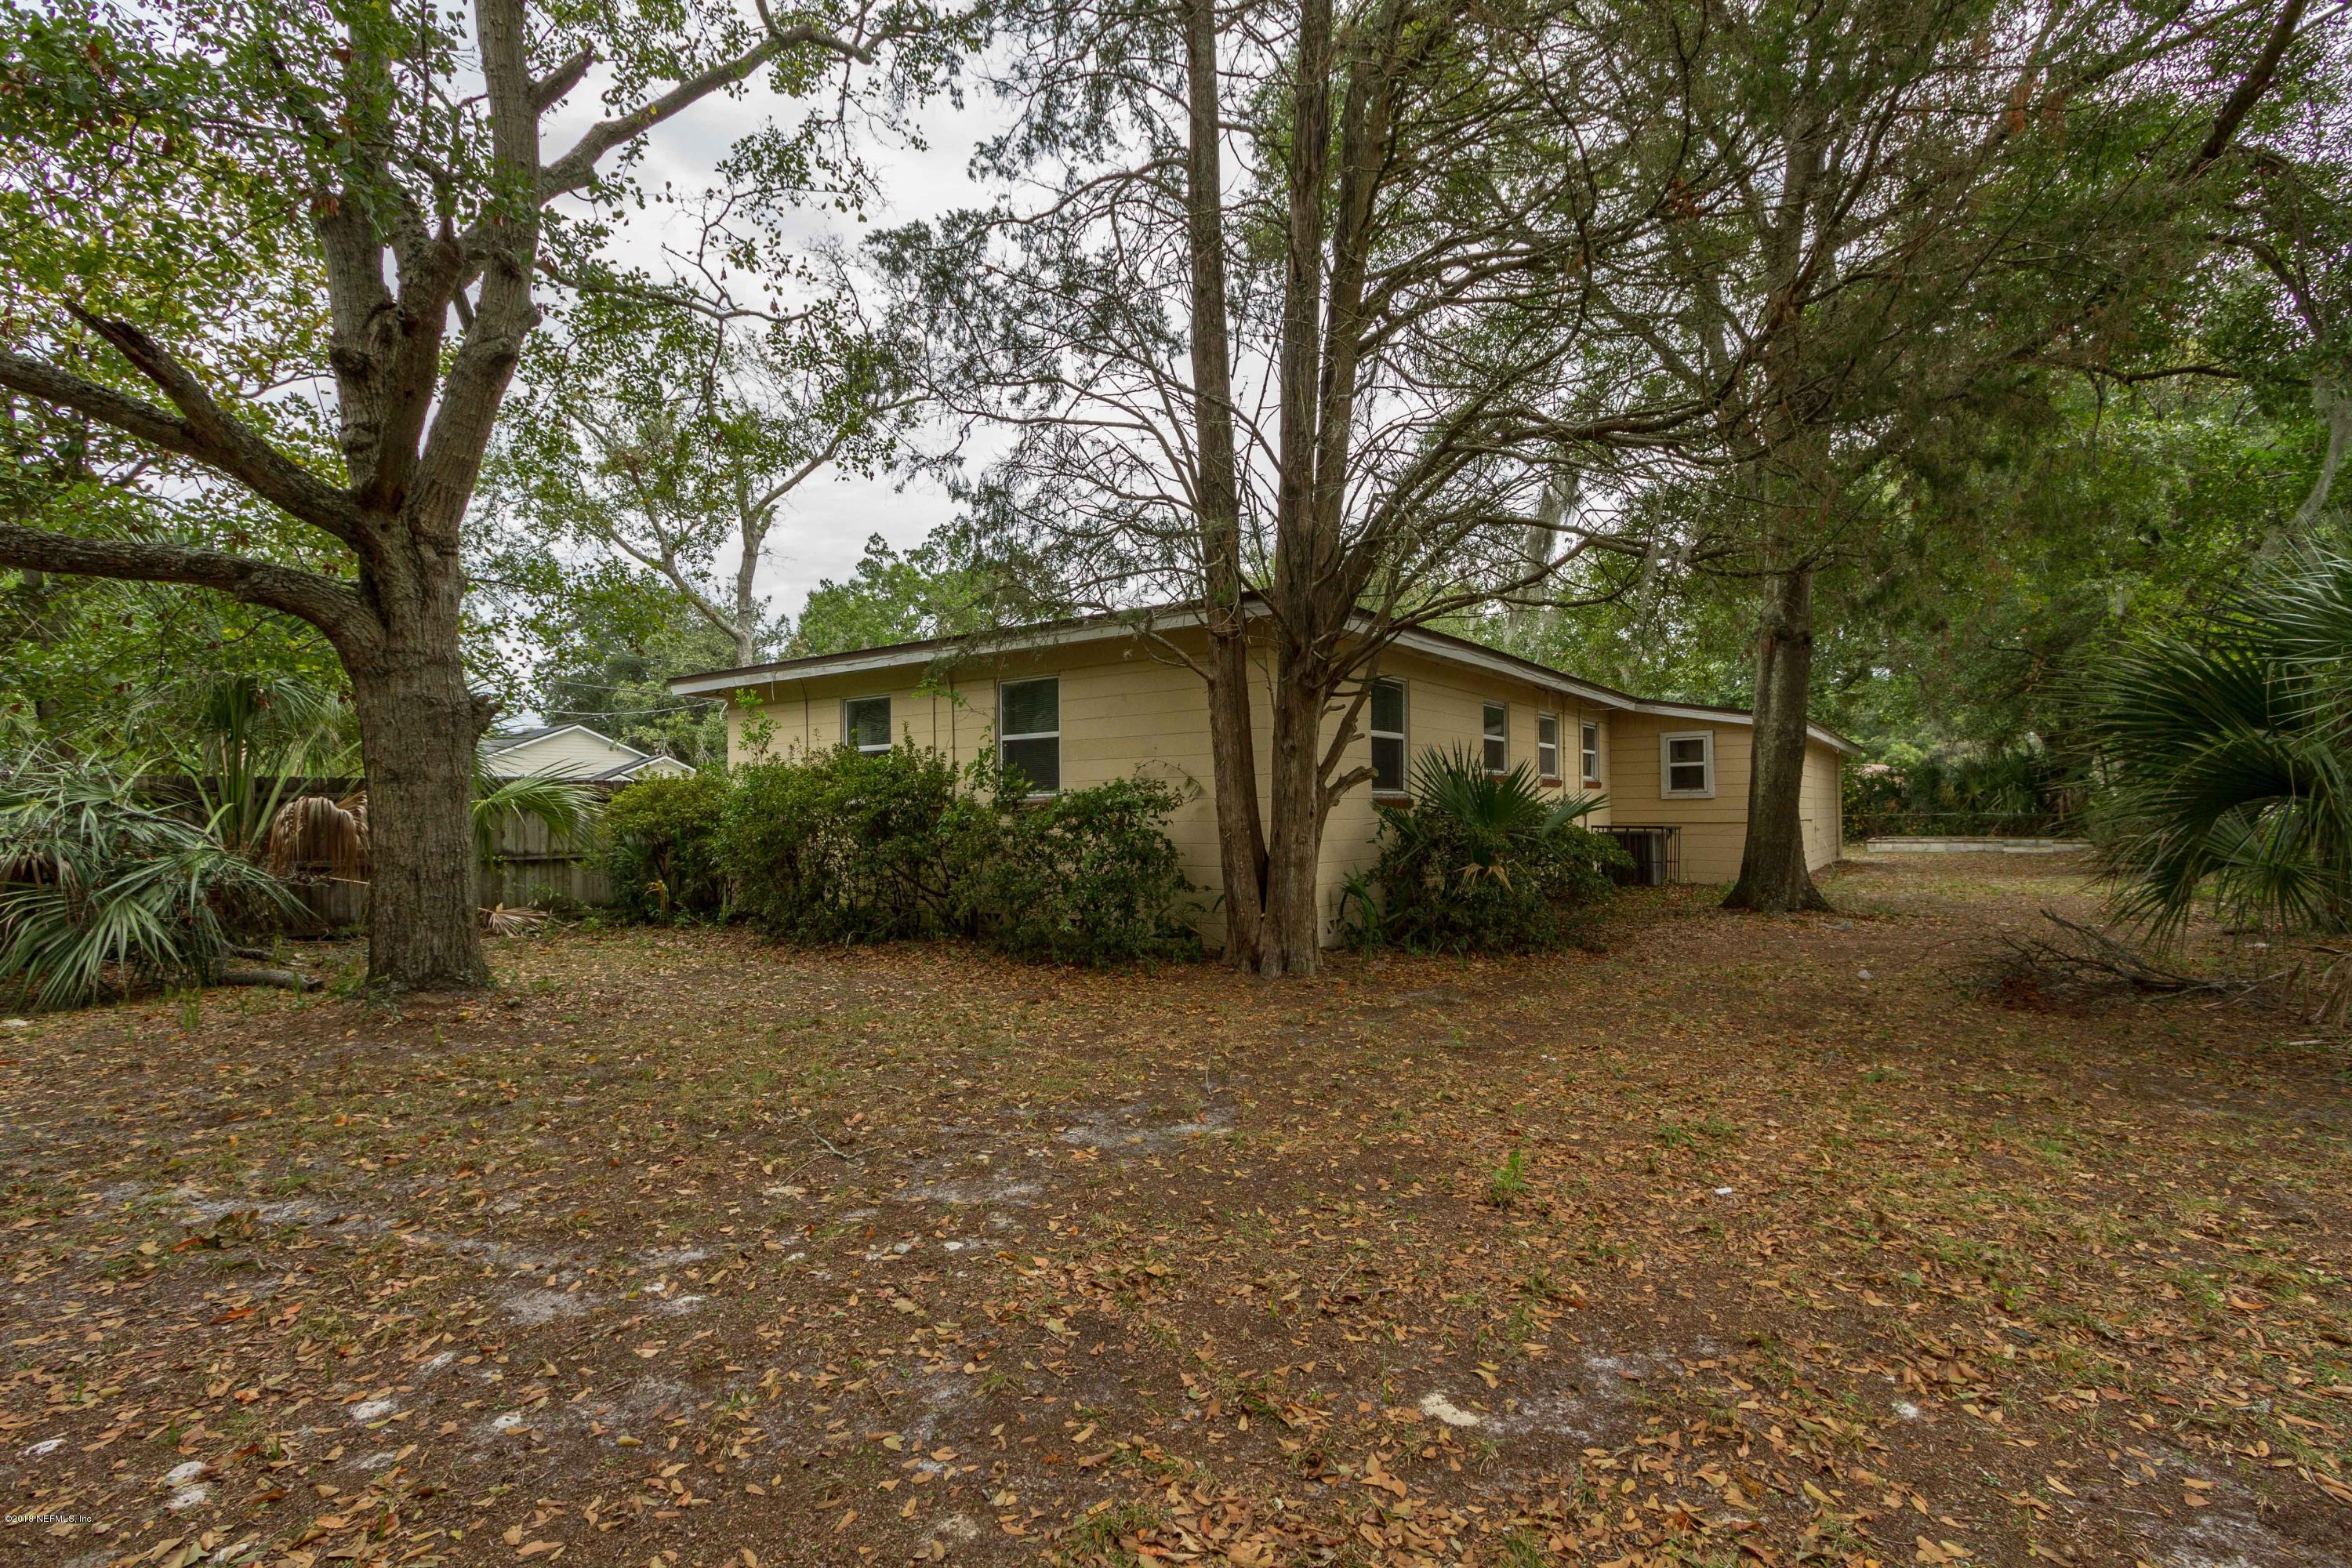 6034 PEELER, JACKSONVILLE, FLORIDA 32277, 5 Bedrooms Bedrooms, ,2 BathroomsBathrooms,Residential - single family,For sale,PEELER,965410